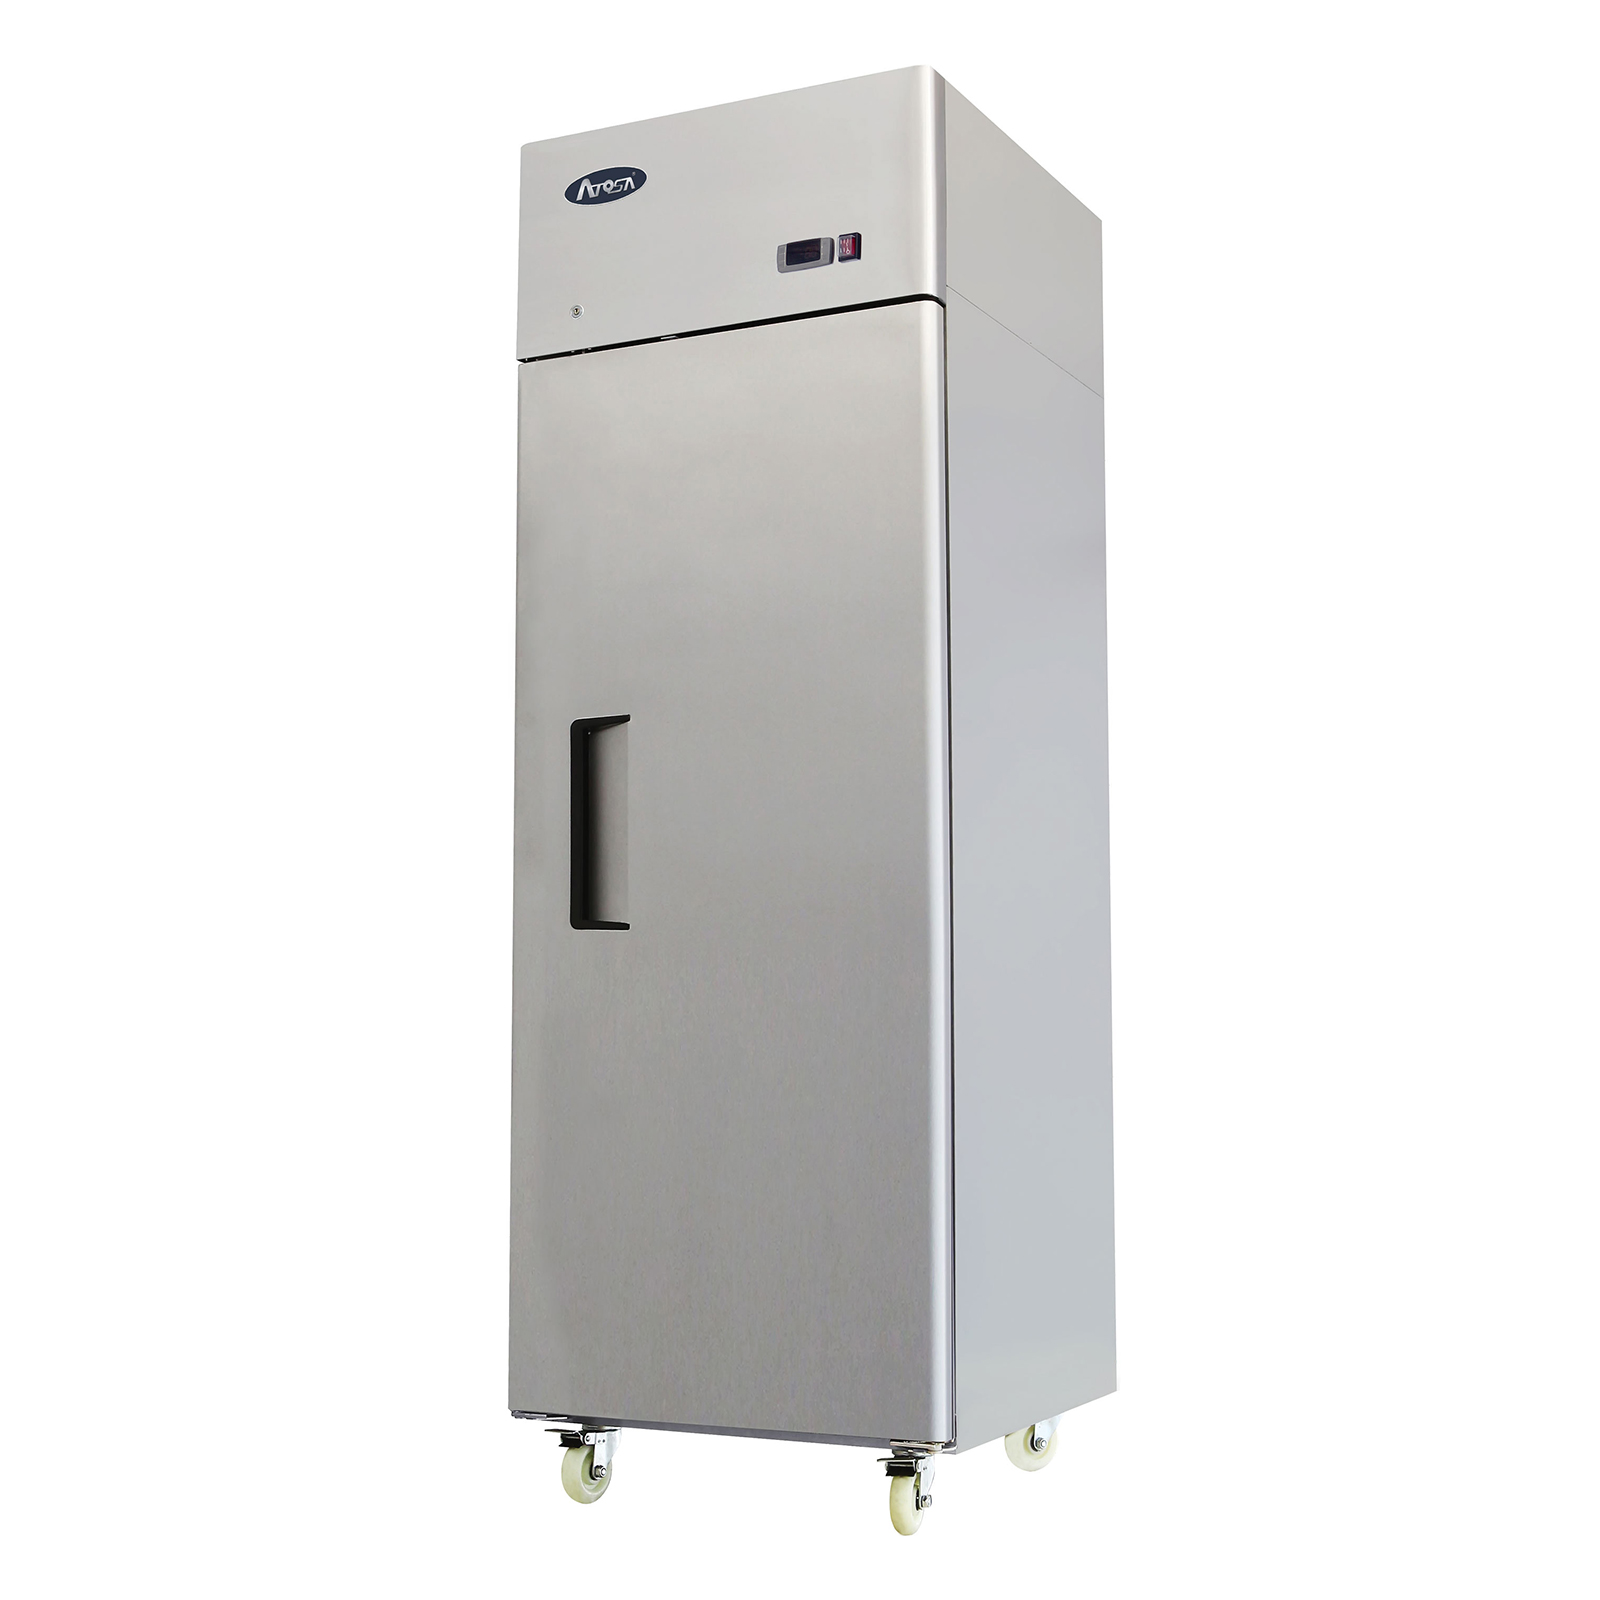 Atosa USA MBF8001GR freezer, reach-in